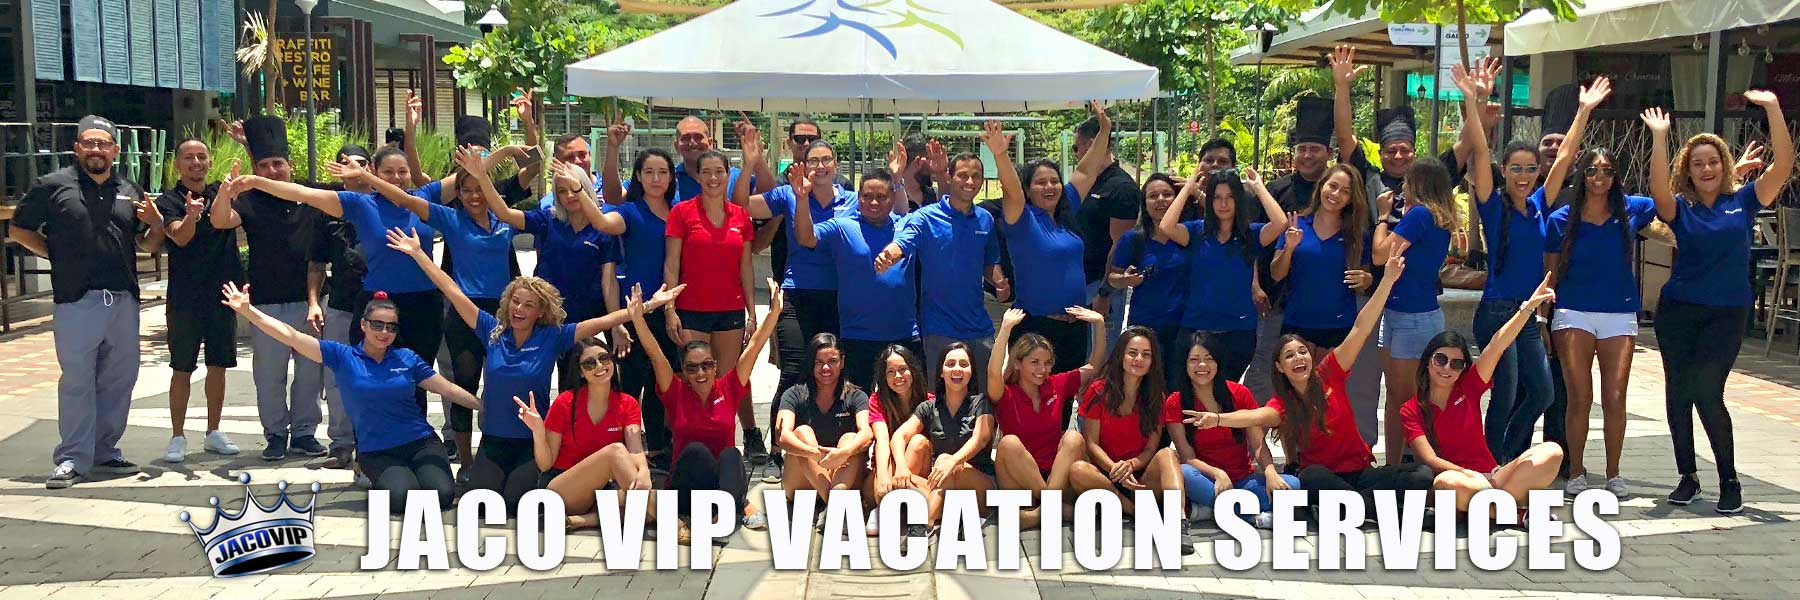 Jaco VIP Vacation Services Staff for All Inclusive Packages in Costa Rica